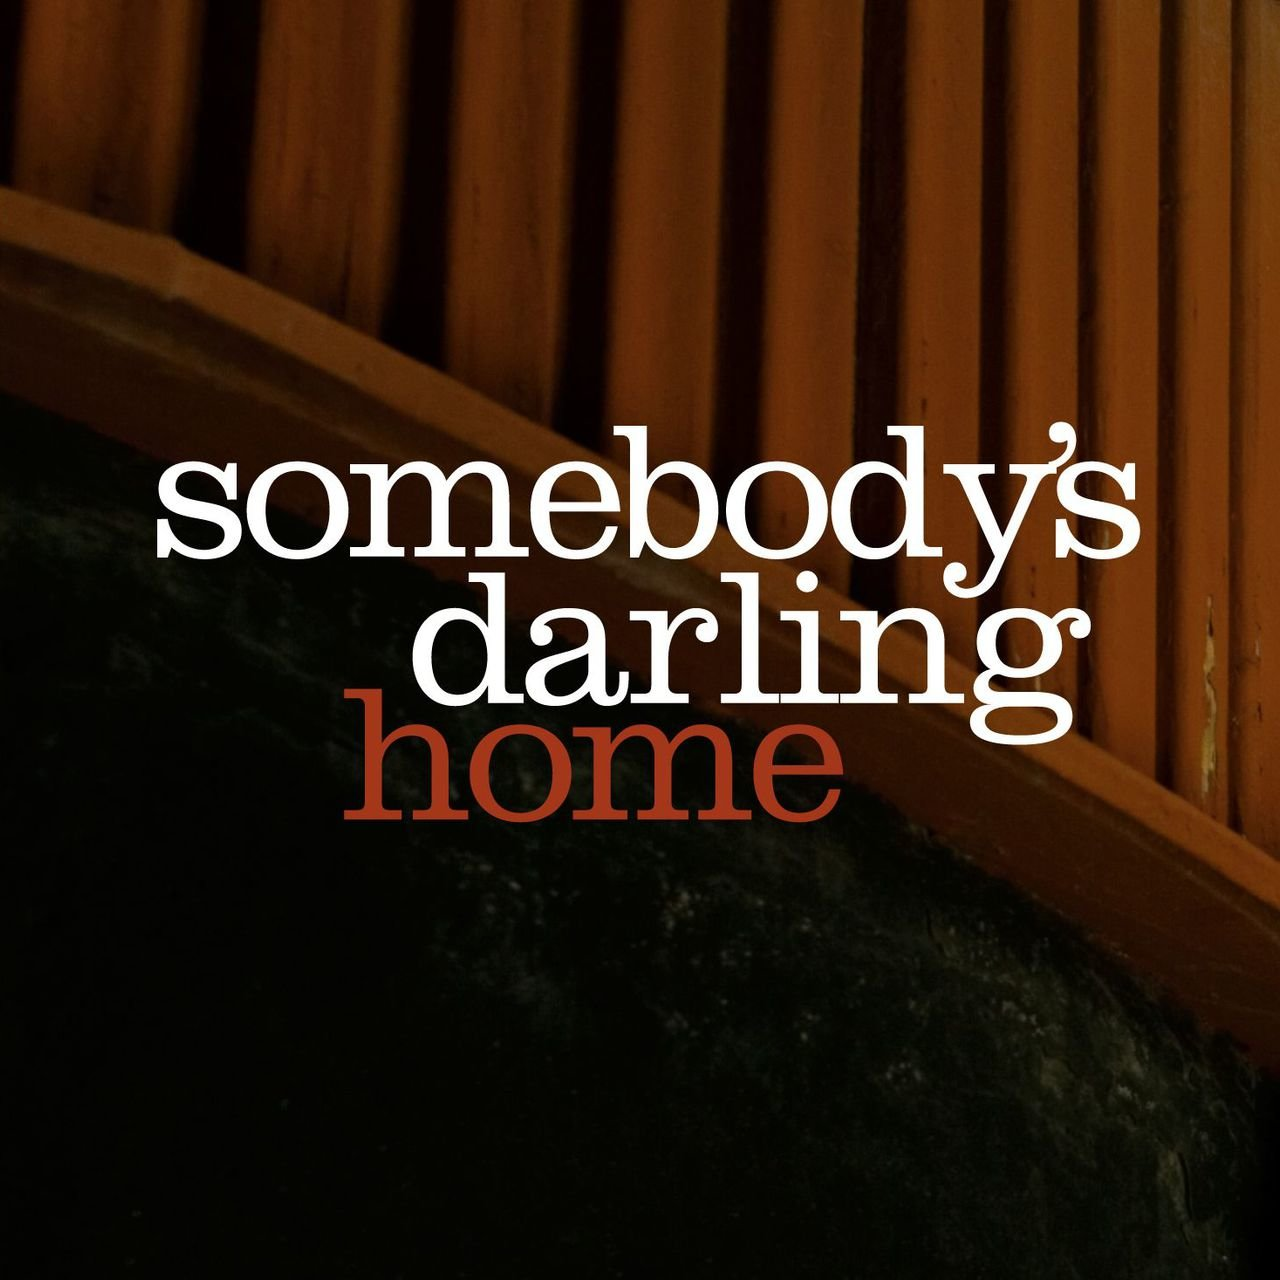 Home (DMD single)